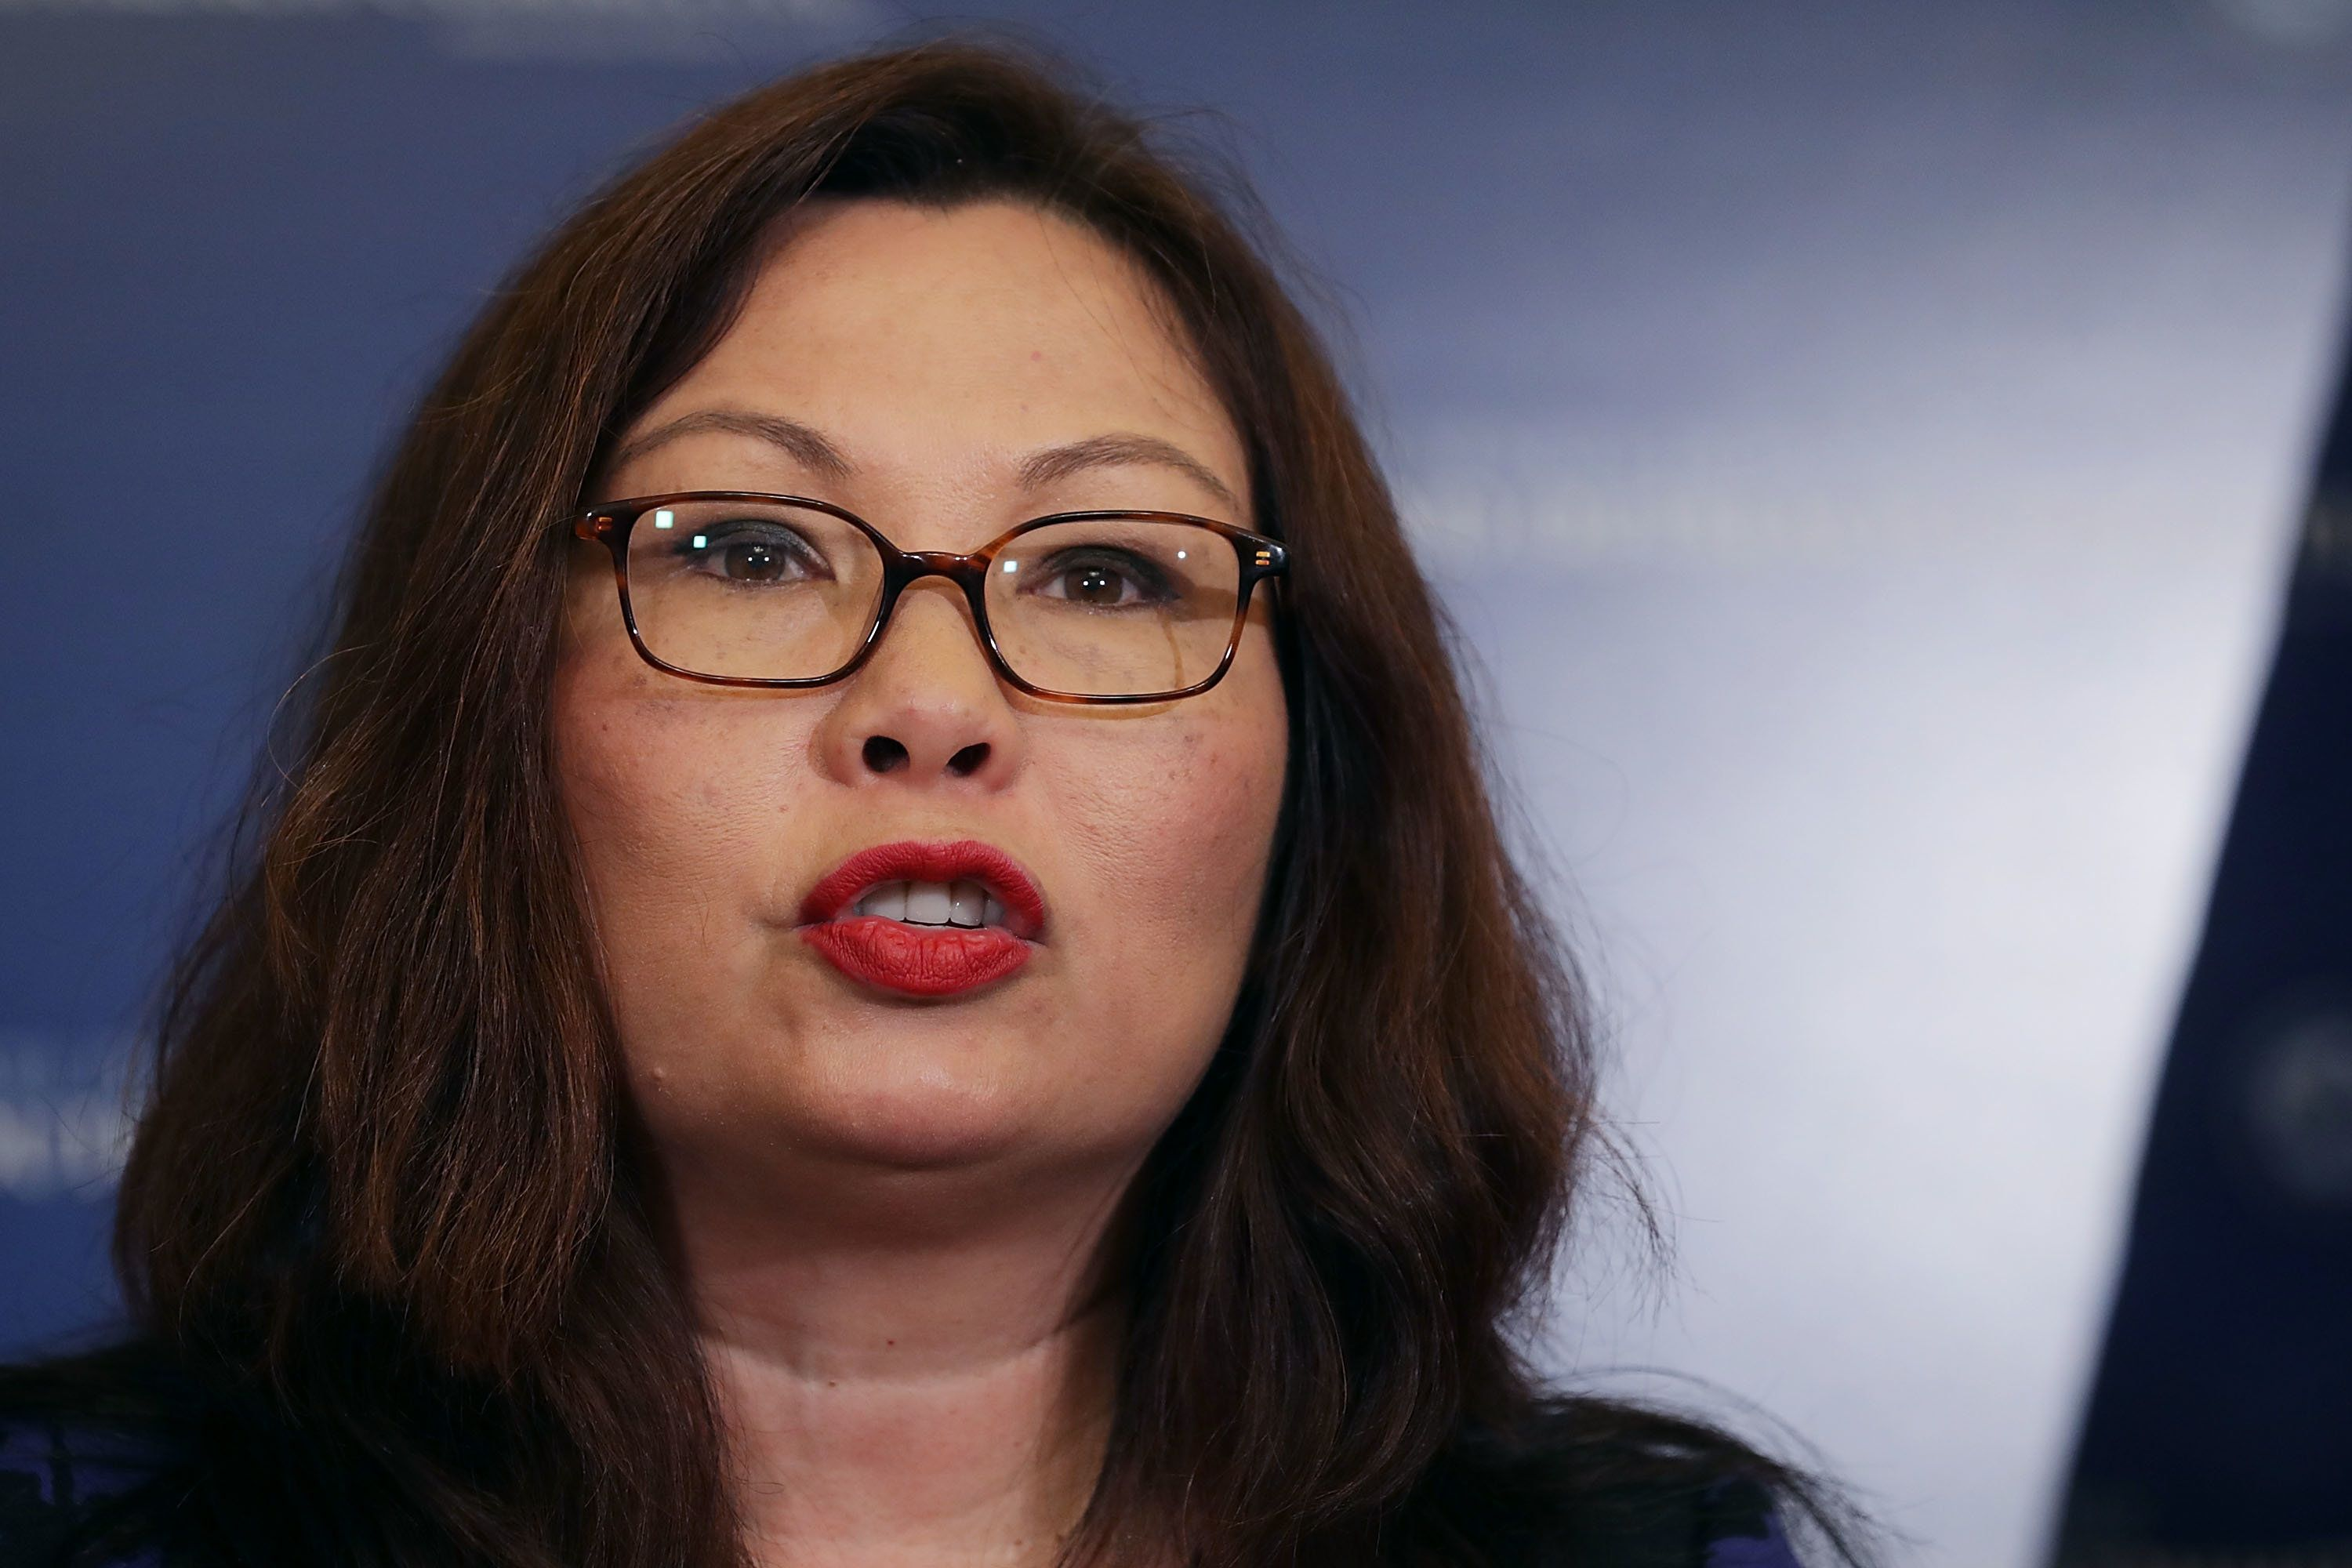 Iraq War veteran Sen. Tammy Duckworth (D-Ill.) has vocally supported Miguel Perez Jr., a veteran who was deported back to Mex